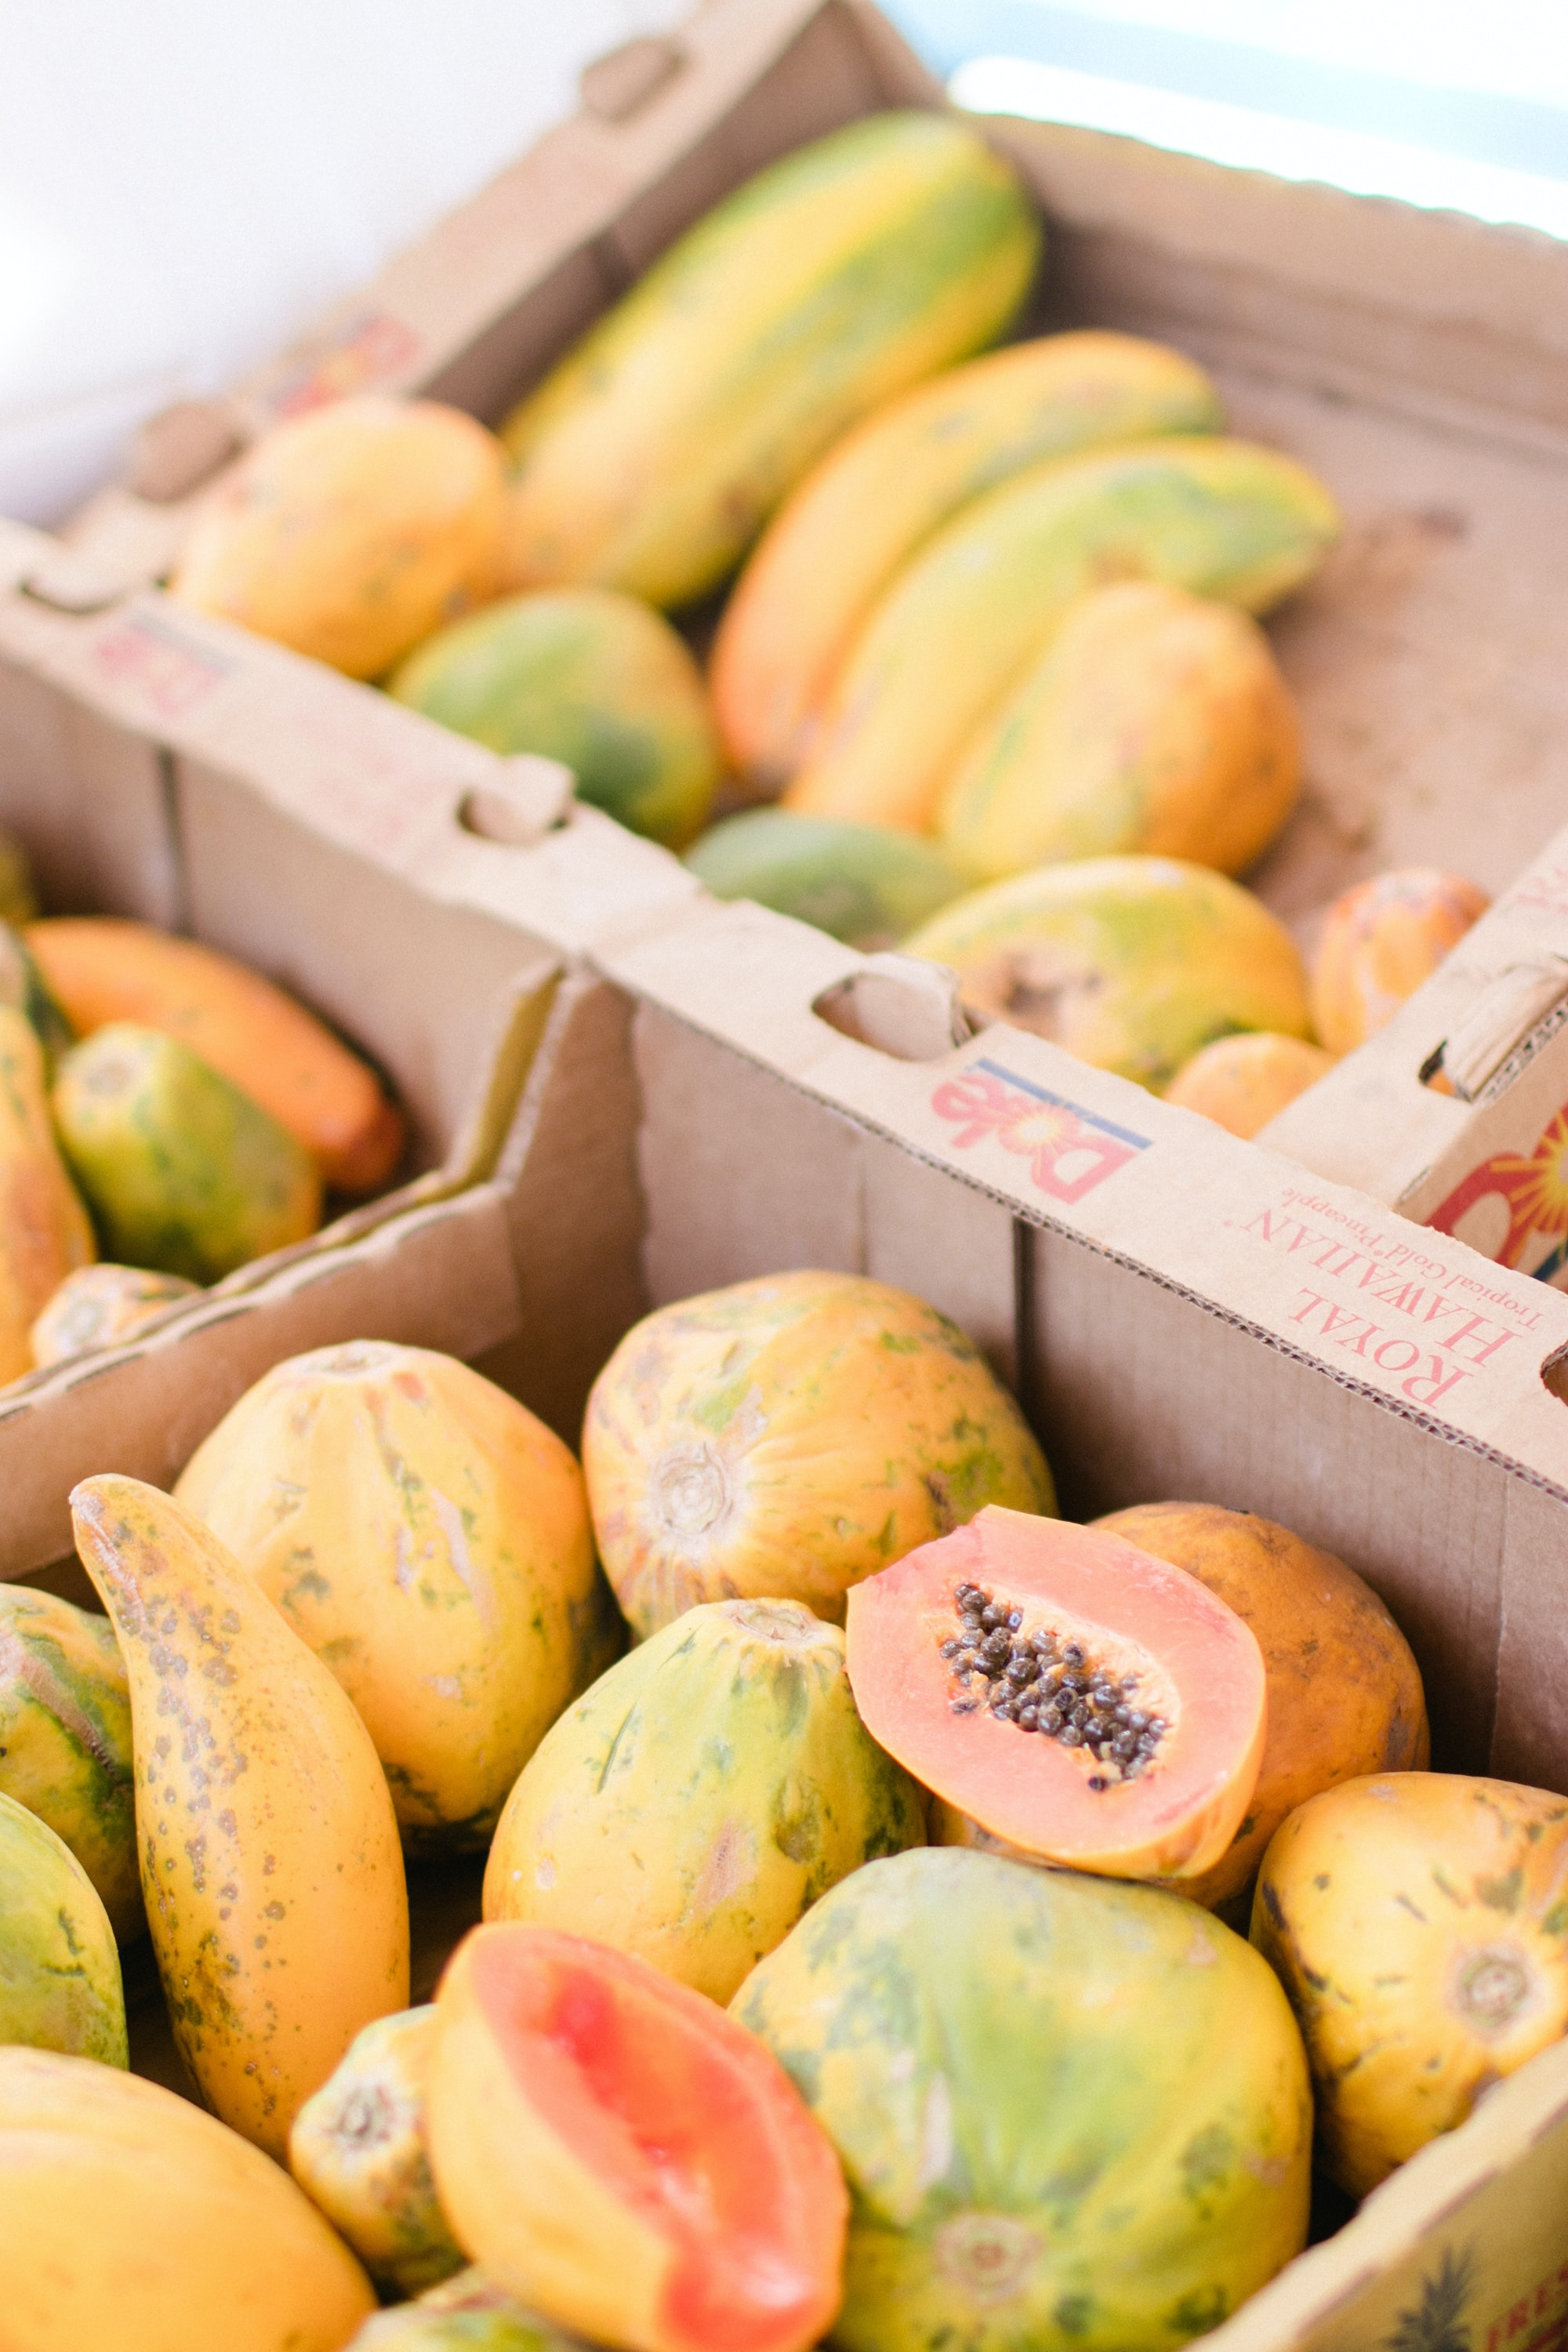 papaya fruits in boxes